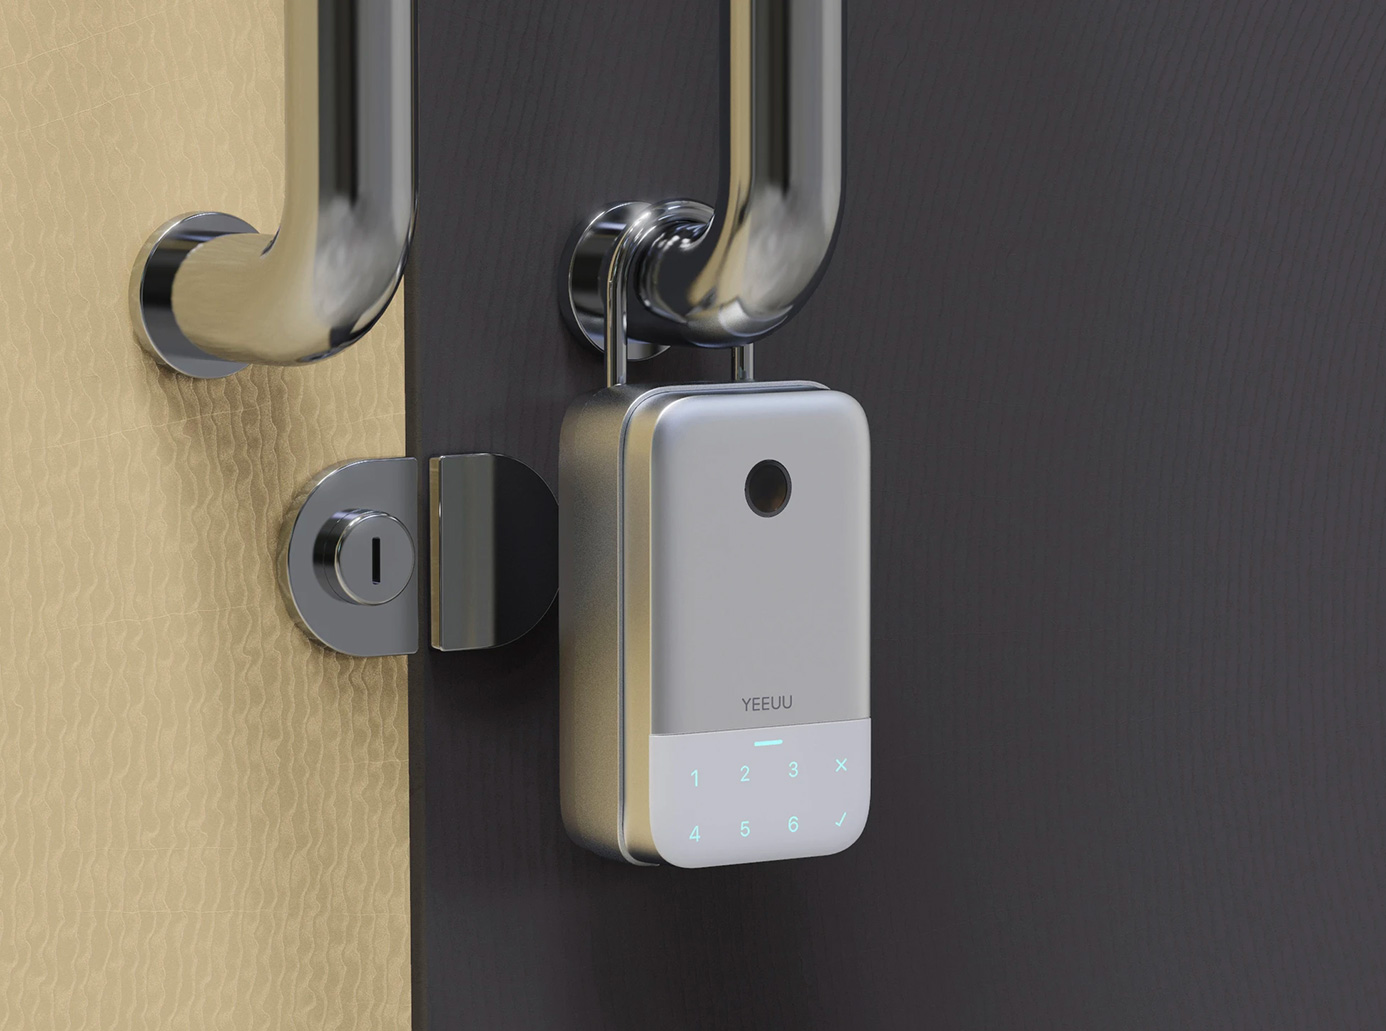 The K1 Smart Lock Box Keeps Your Property Protected at werd.com